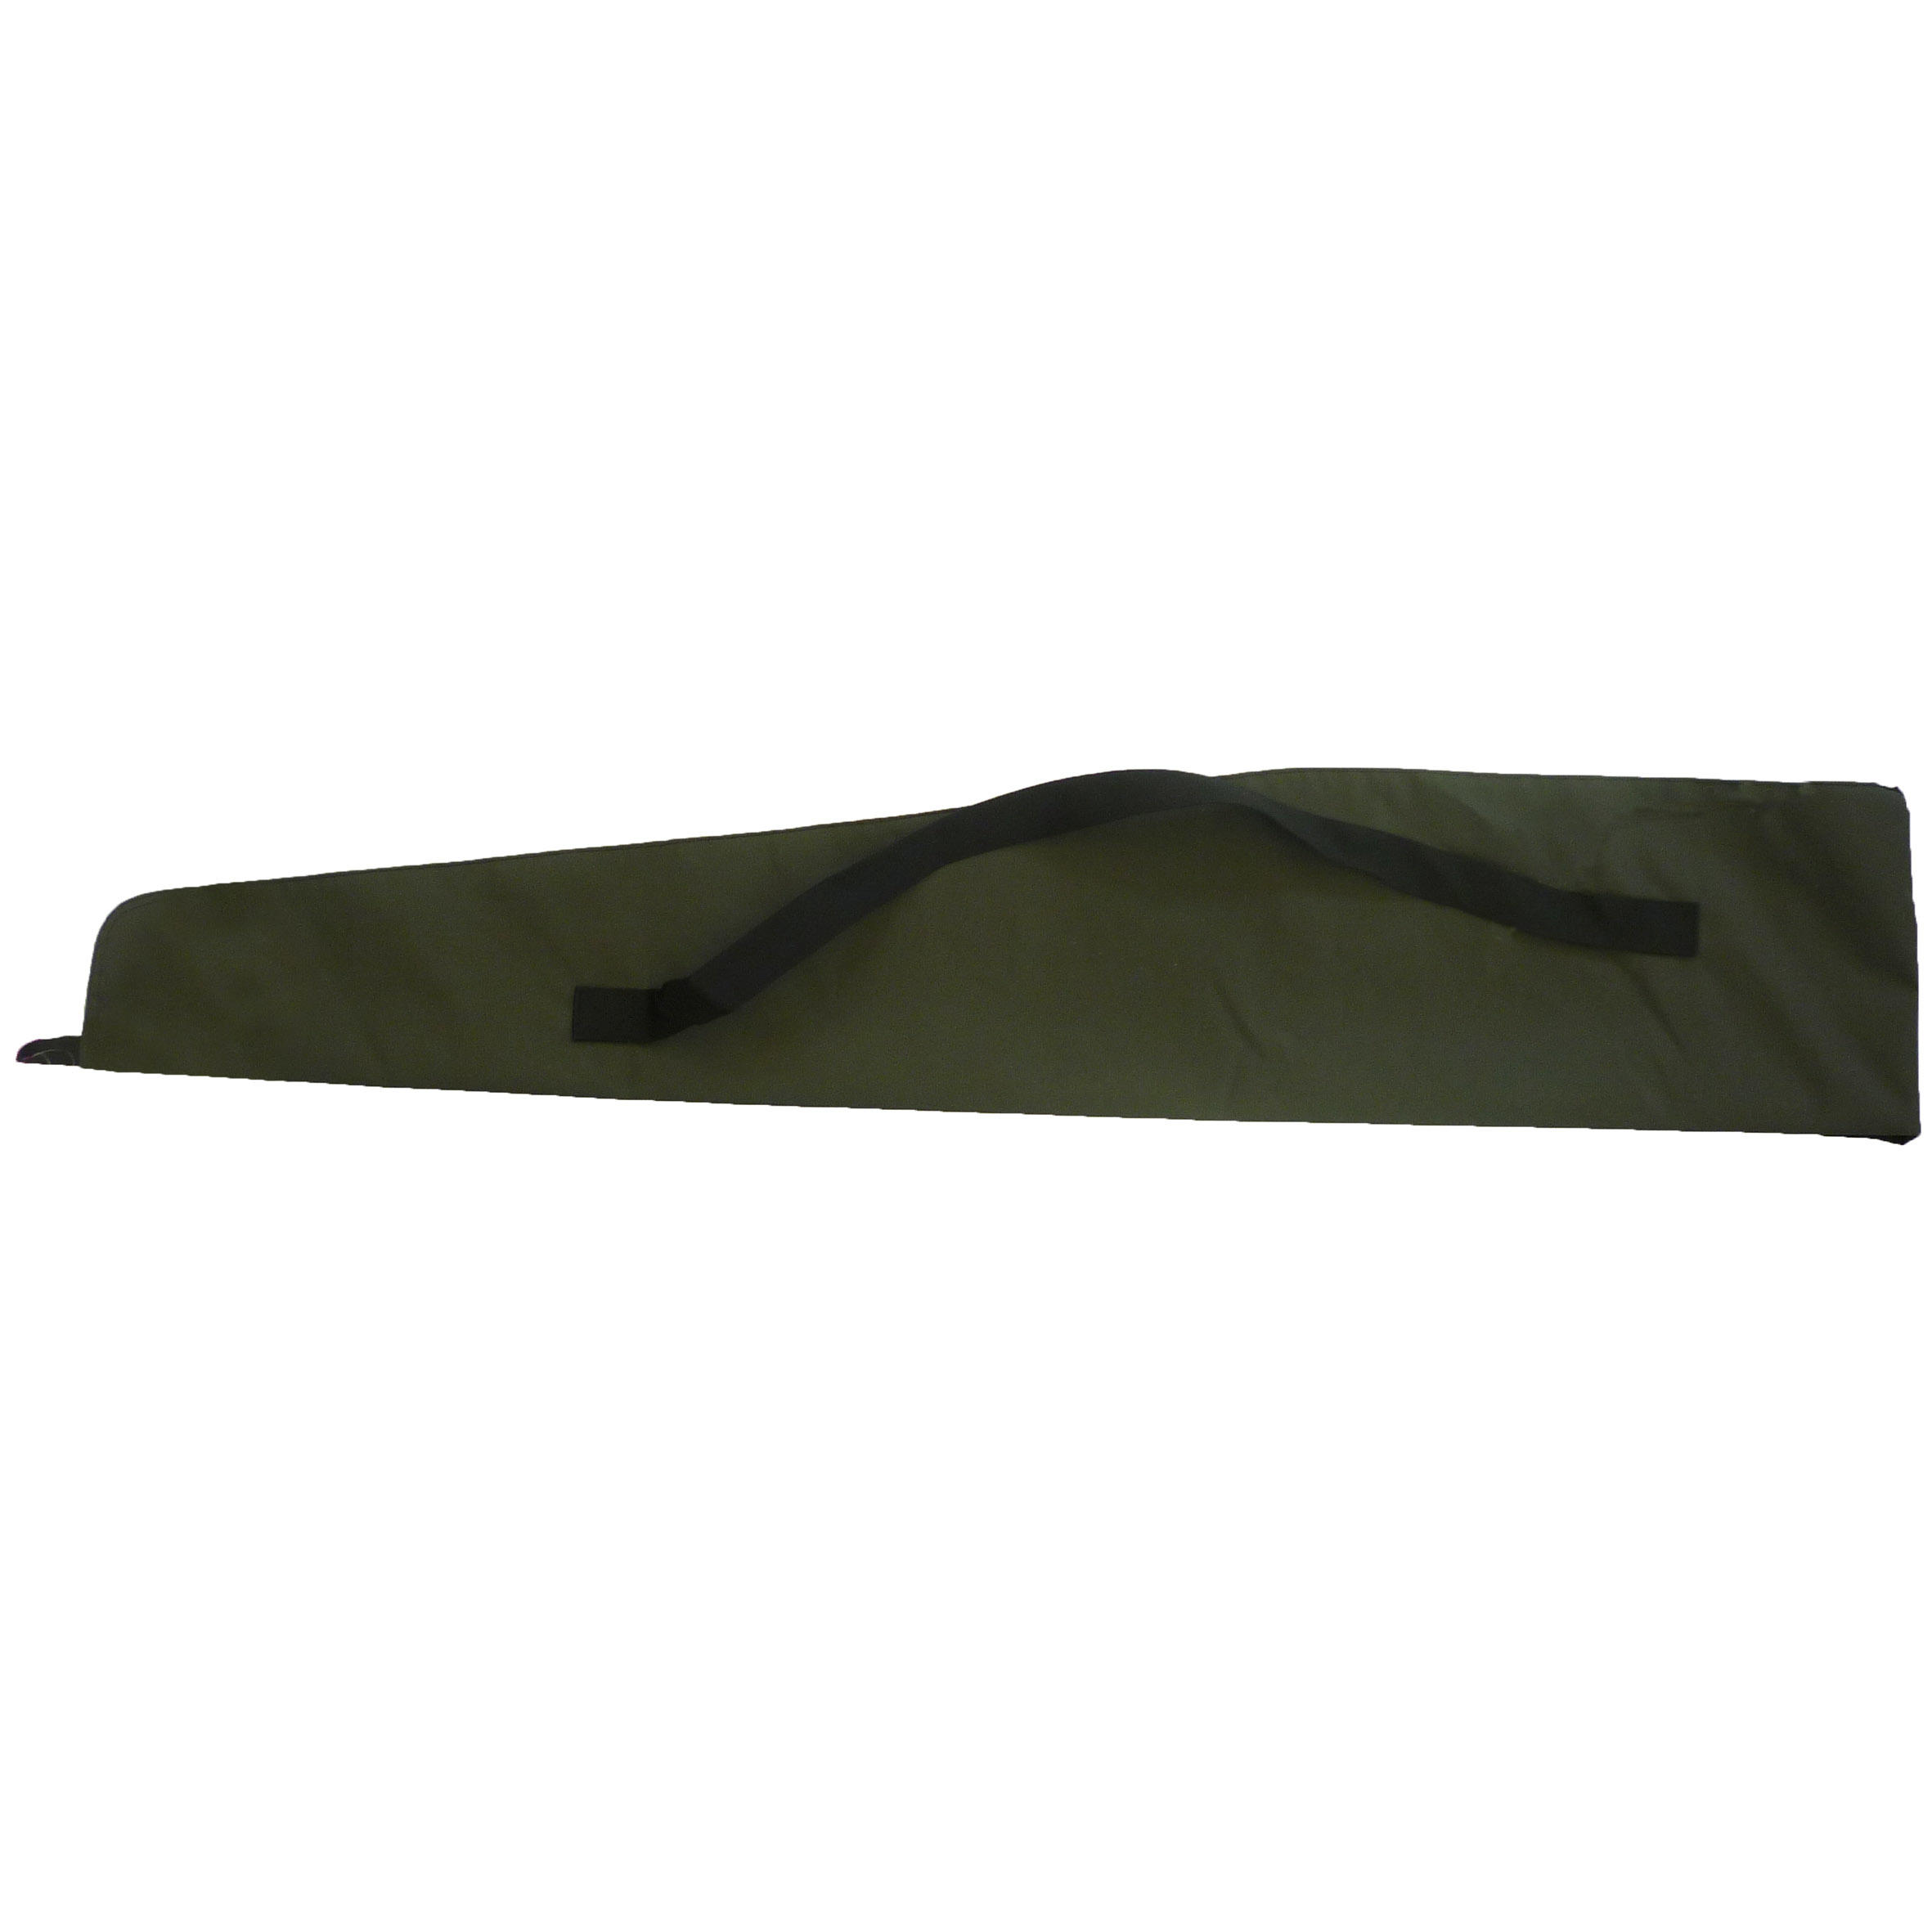 100 rifle sleeve - green